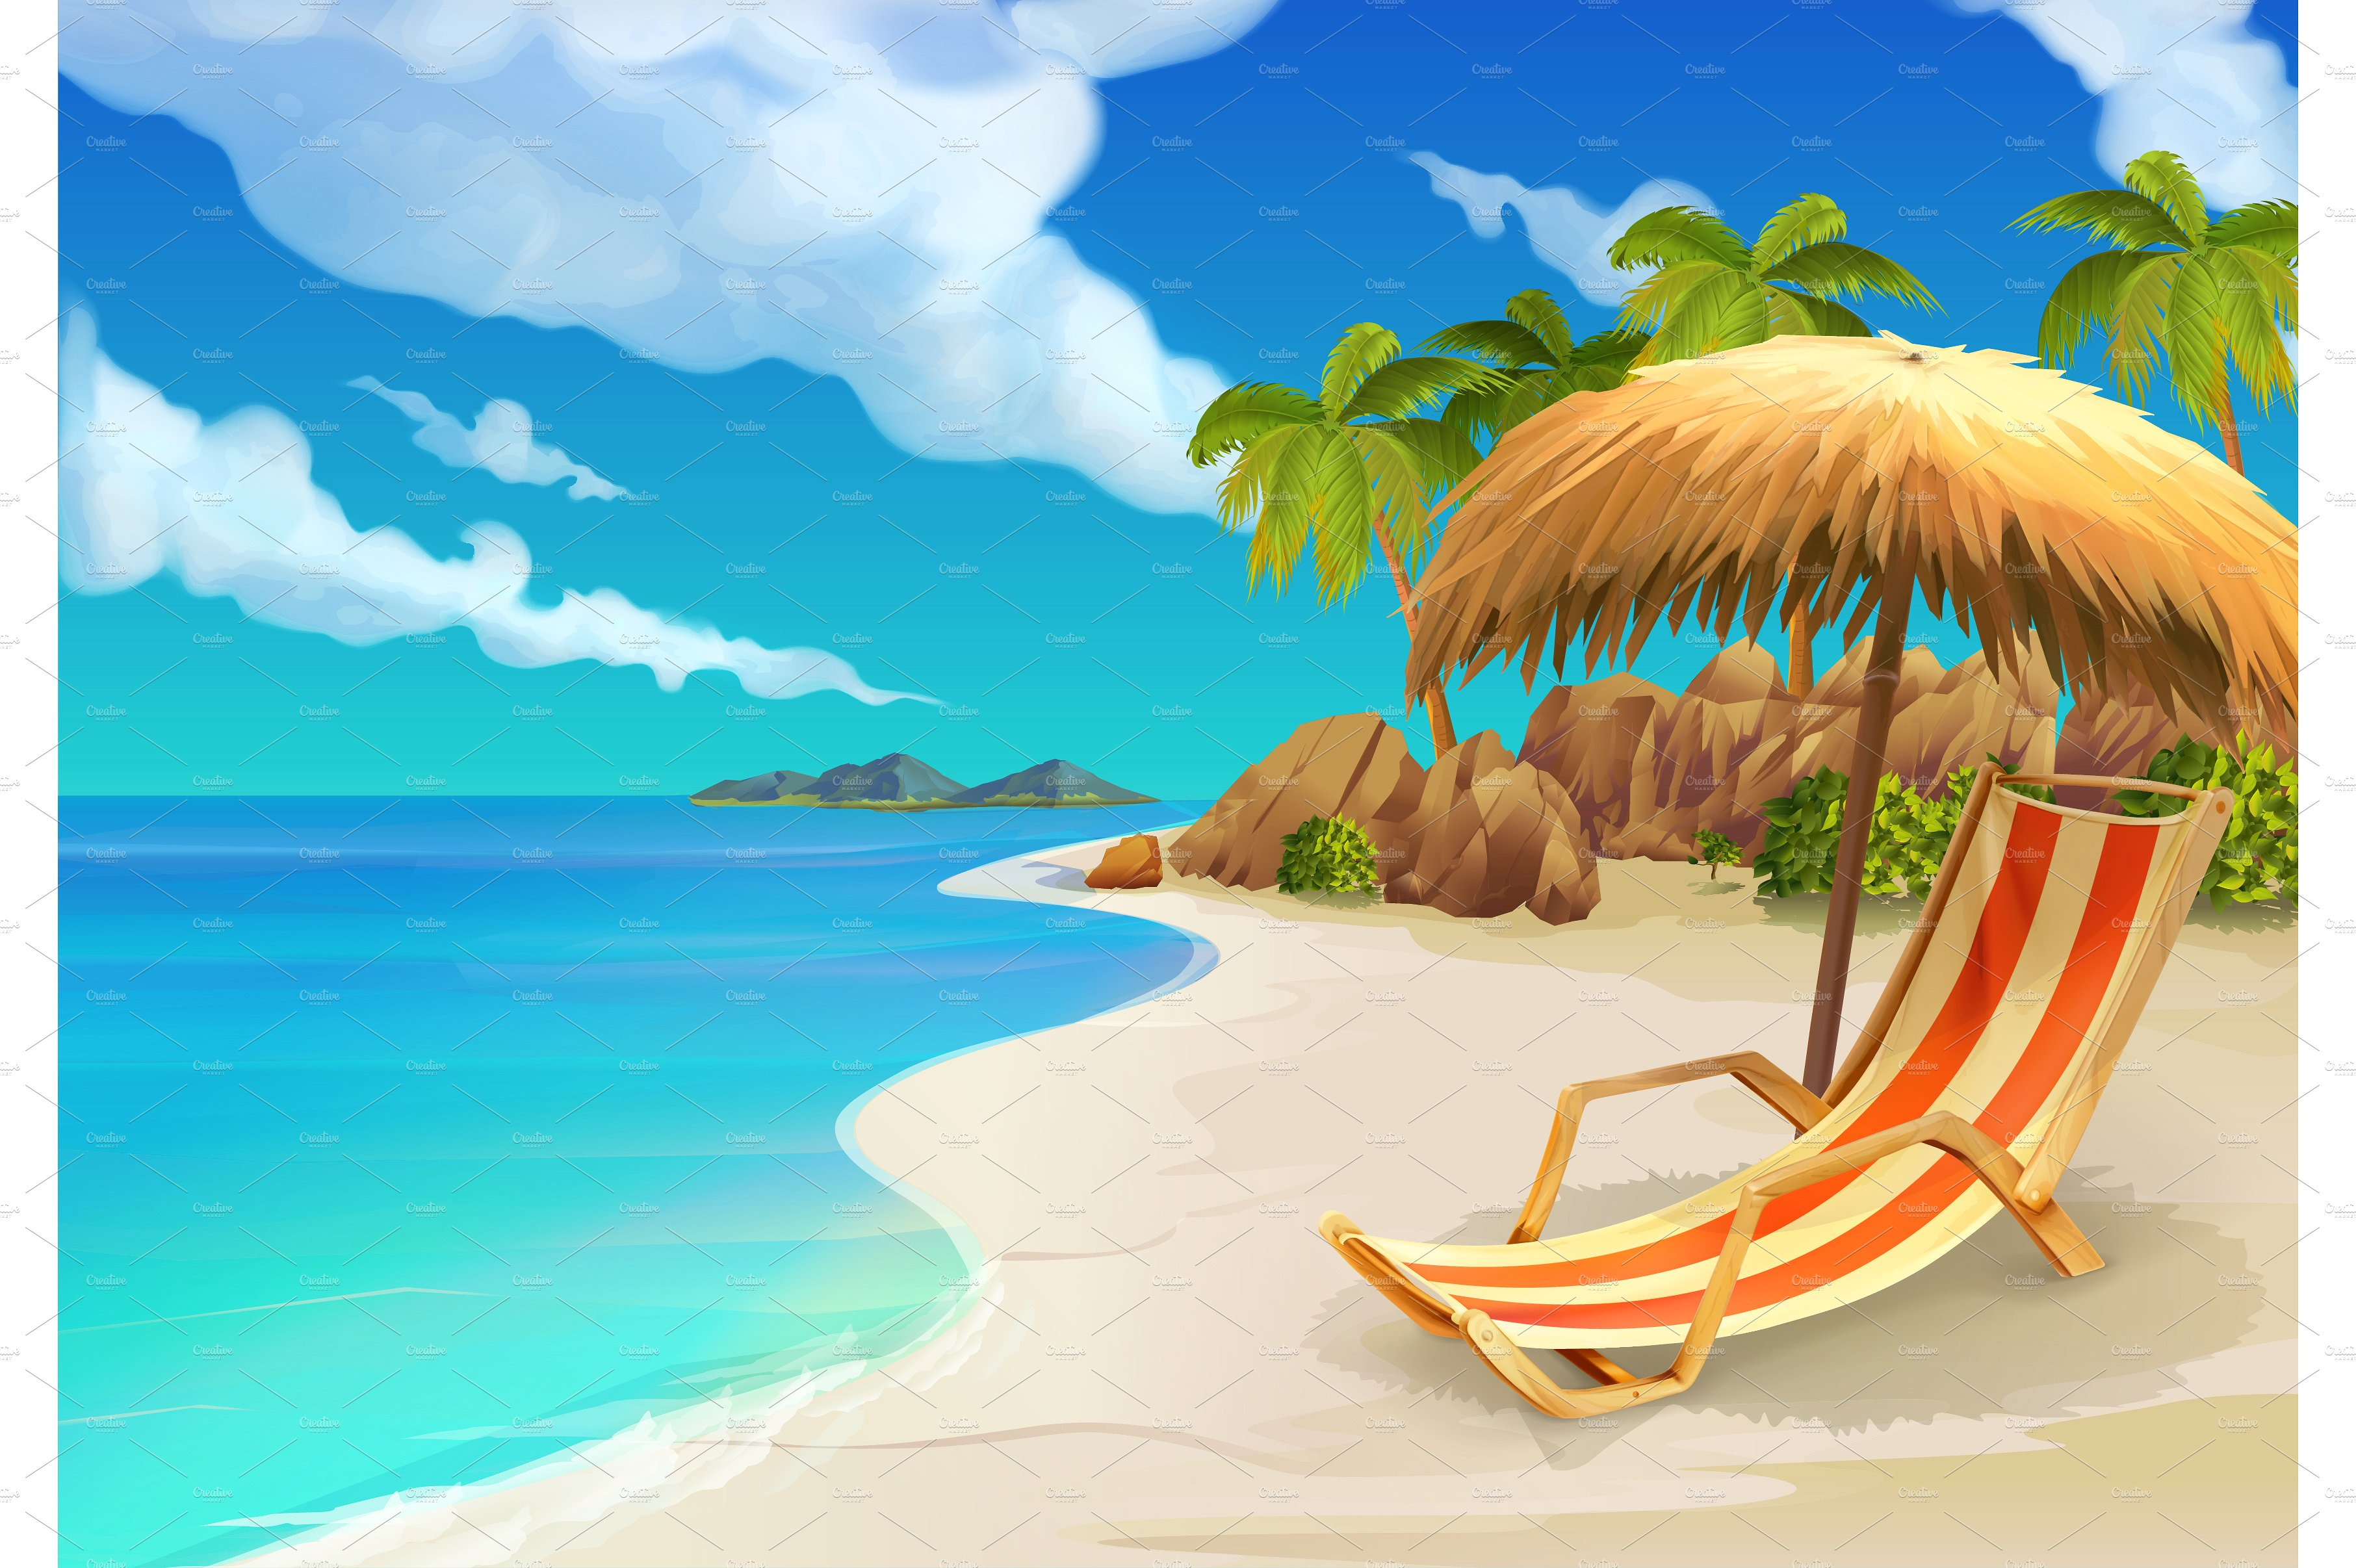 Tropical beach ~ Illustrations ~ Creative Market